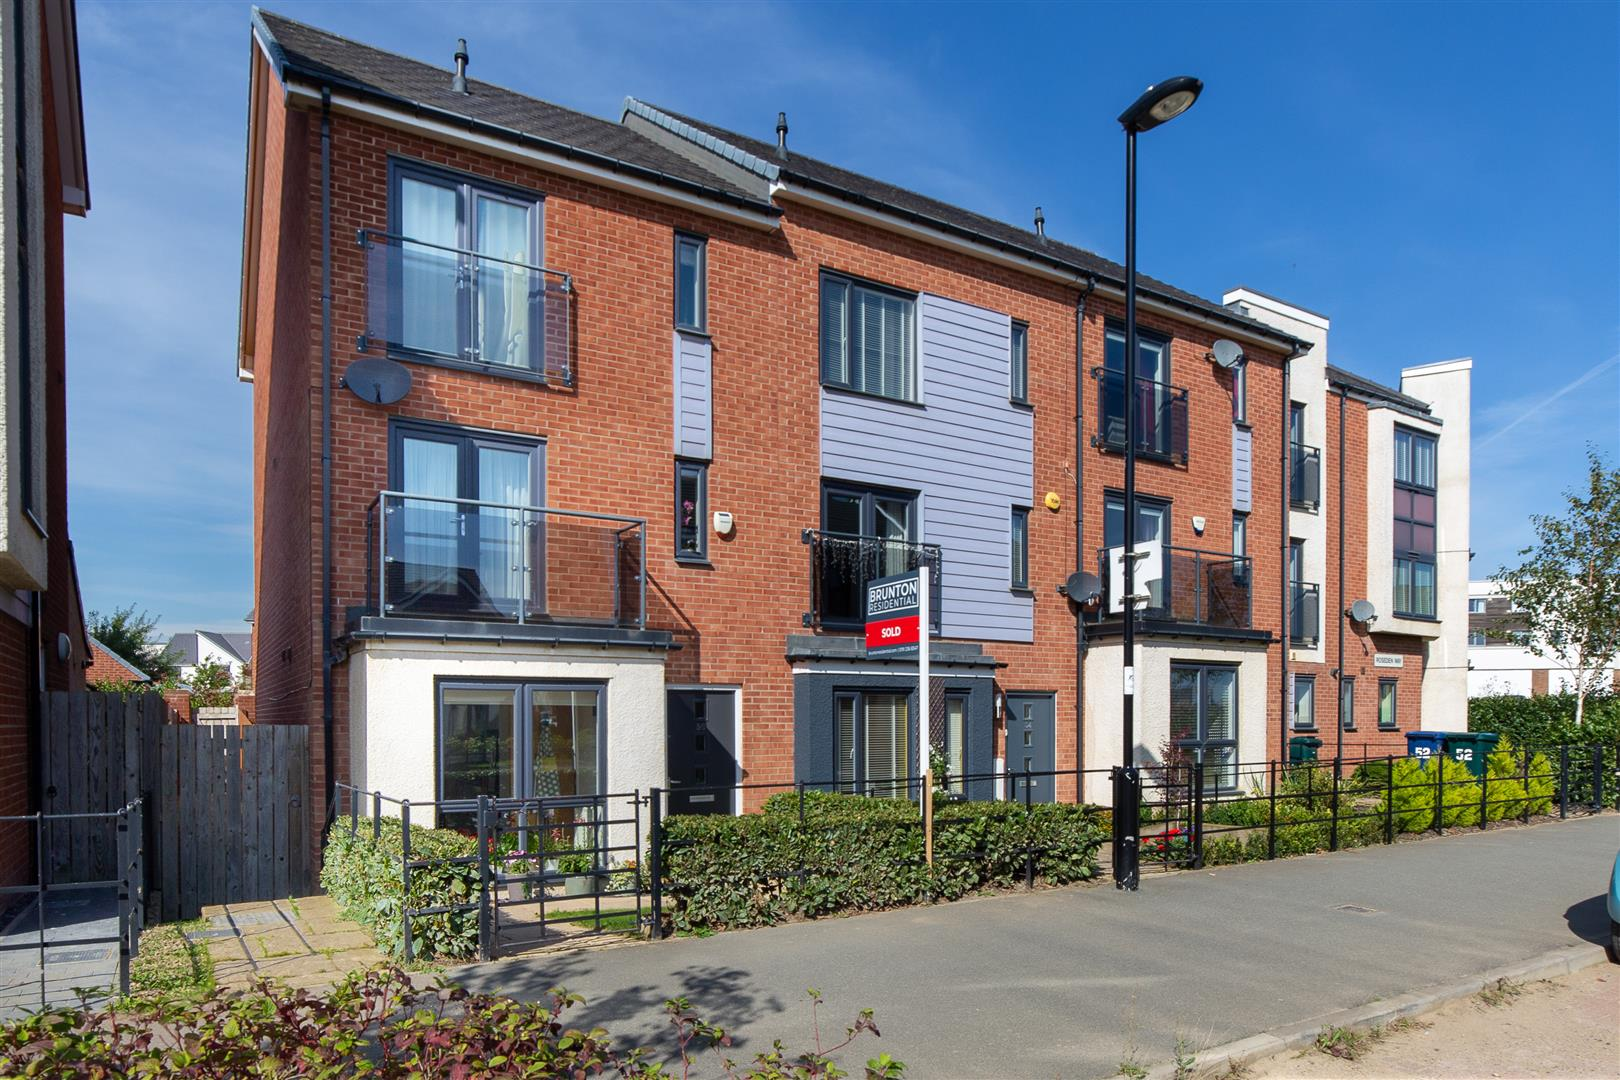 4 bed town house for sale in Newcastle Upon Tyne, NE13 9BN  - Property Image 30